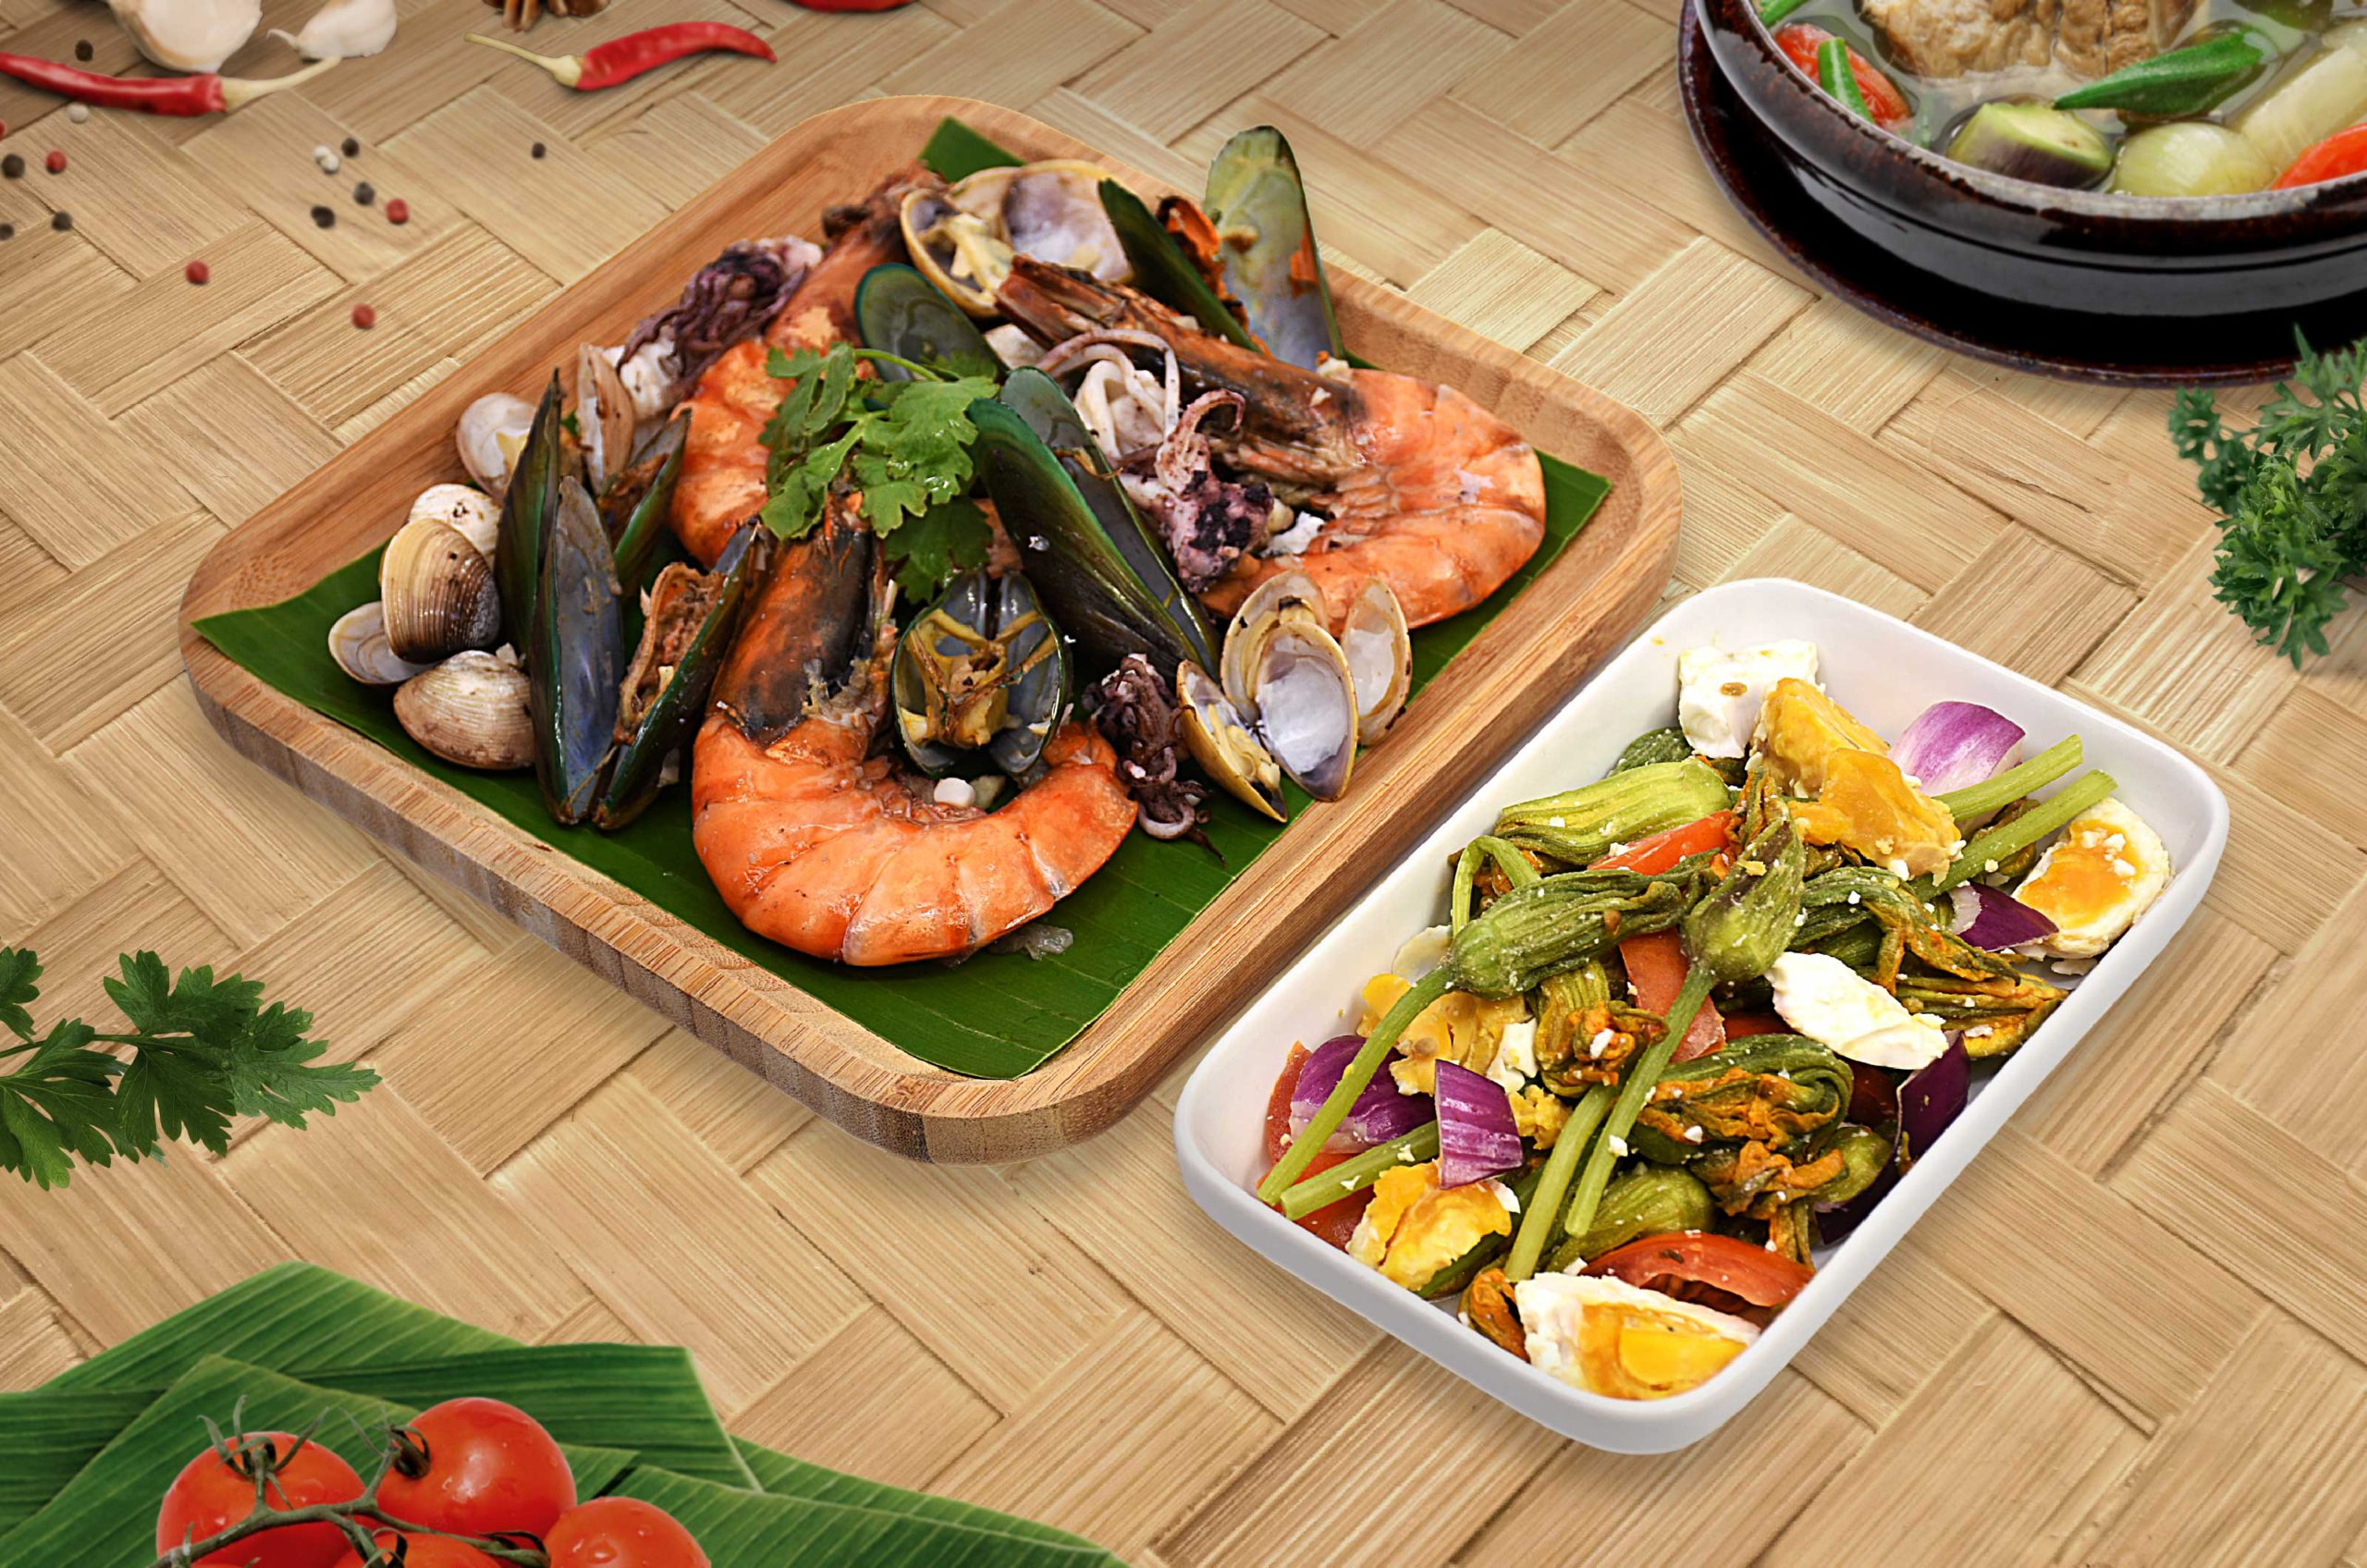 3-Tips-to-Serve-Safe-and-Delicious-Holiday-Meals-APC